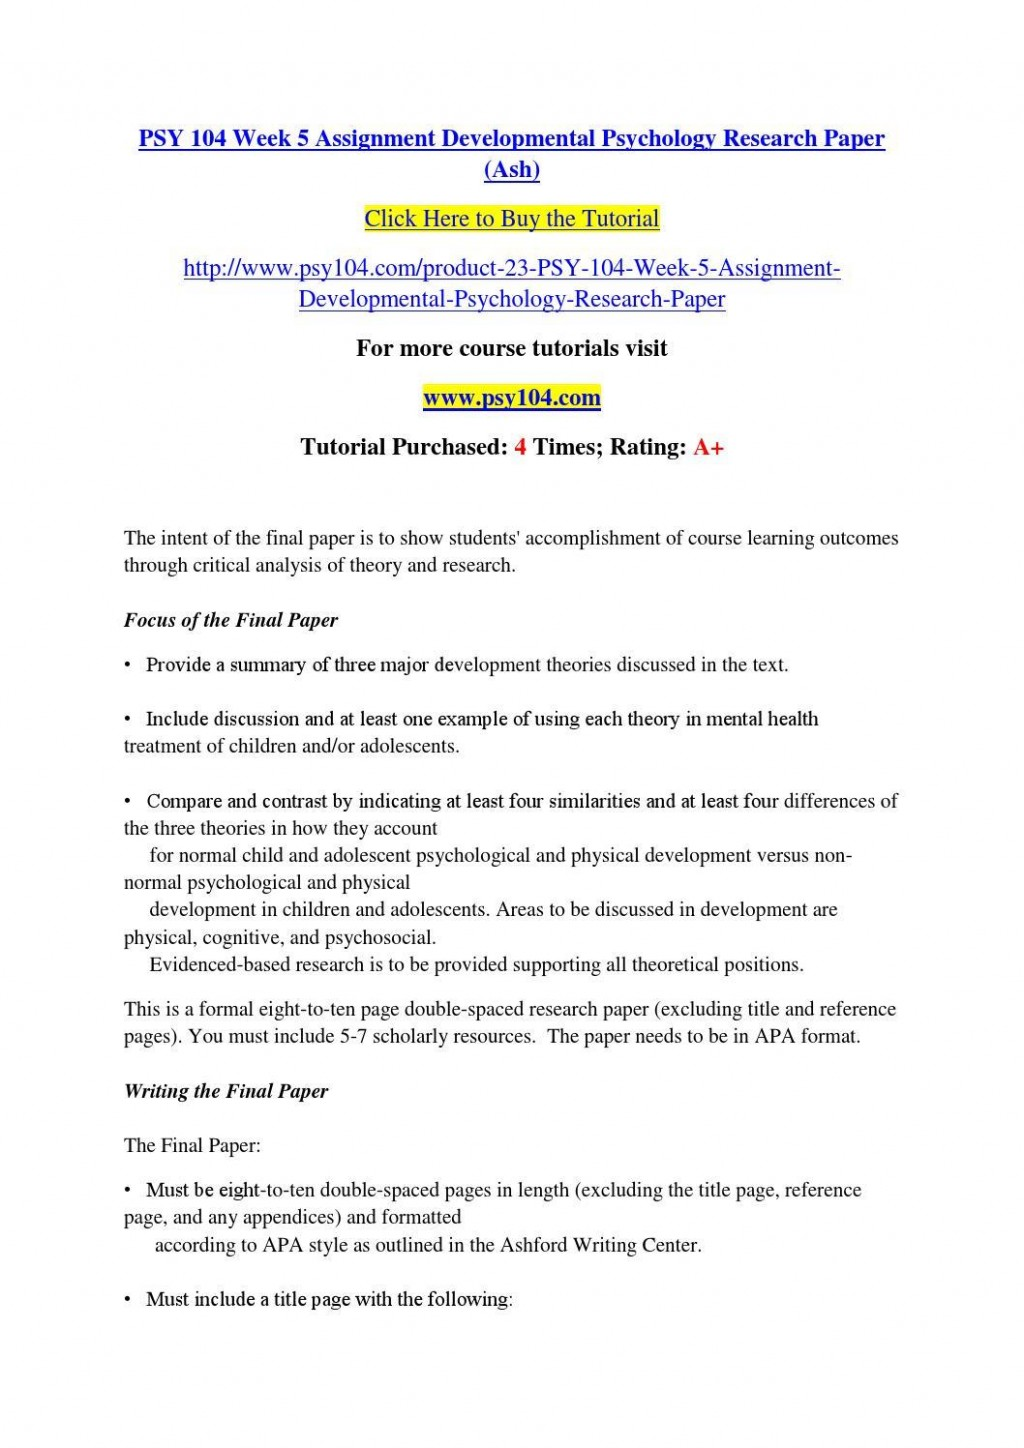 019 Psychology Research Paper Topics List Developmental Essay Ideas Structure Psychological20ent Awesome Topic Large